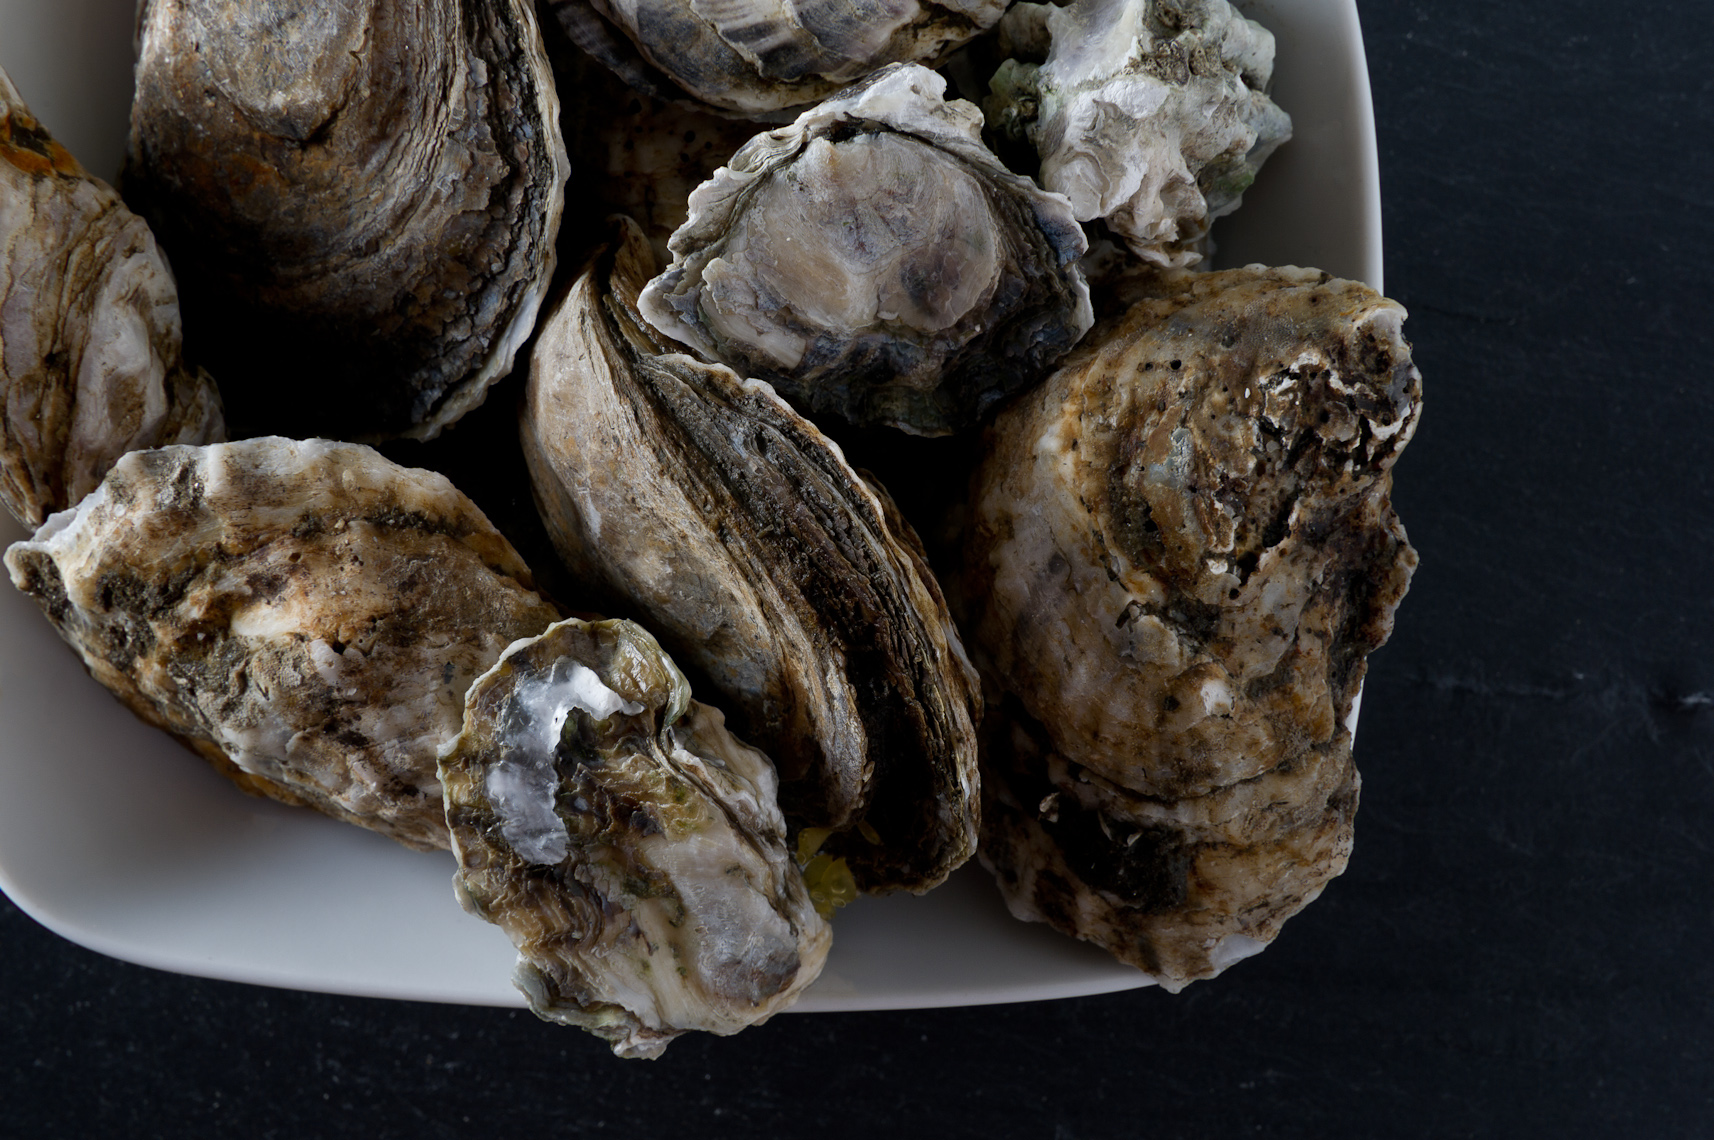 NYC Food Photographer - Raw Oysters